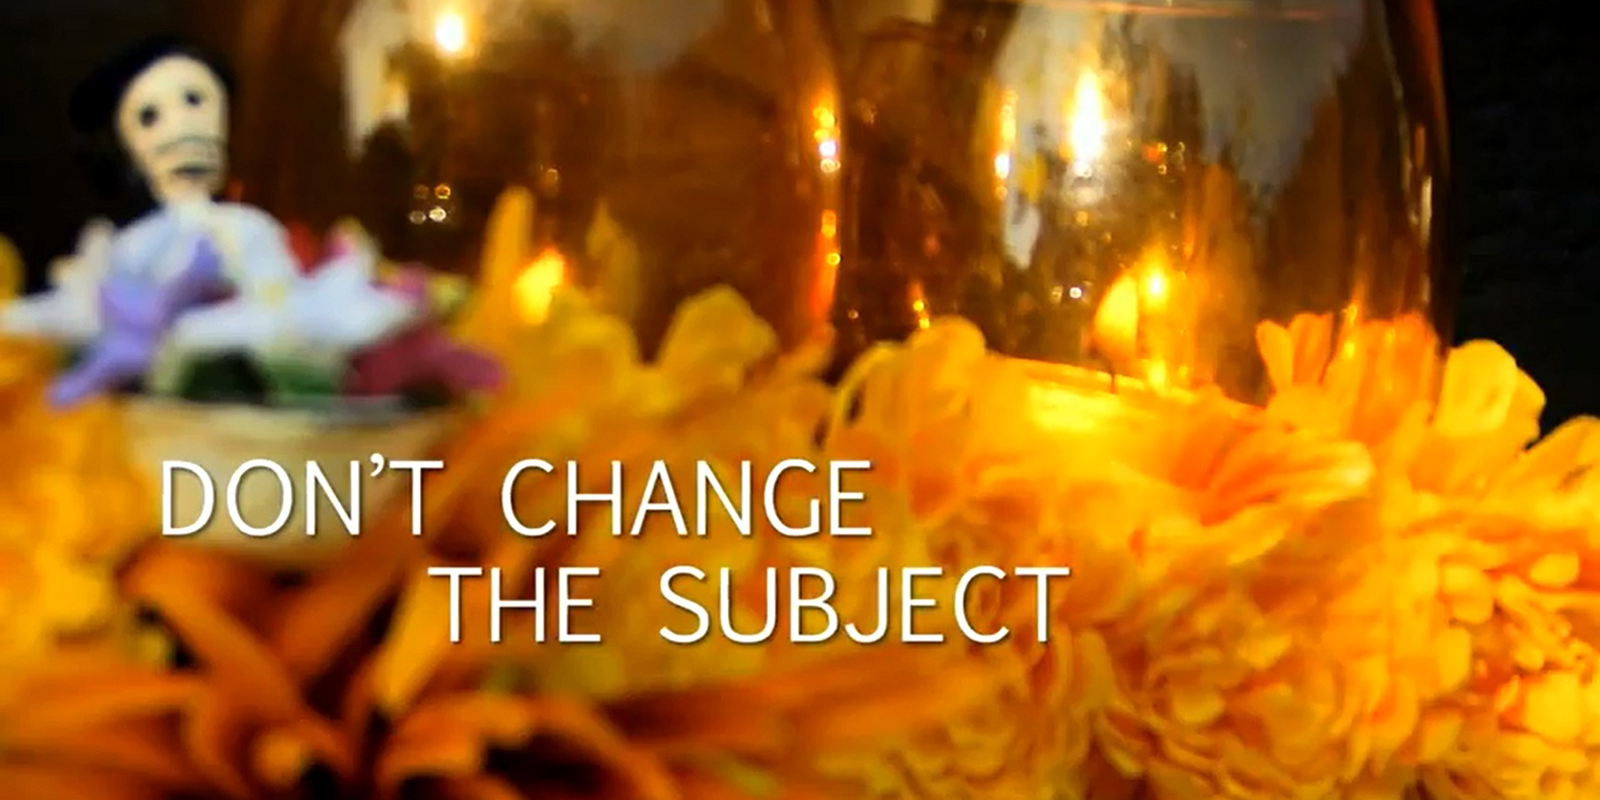 A viewing & discussion of 'Dont change the subject'